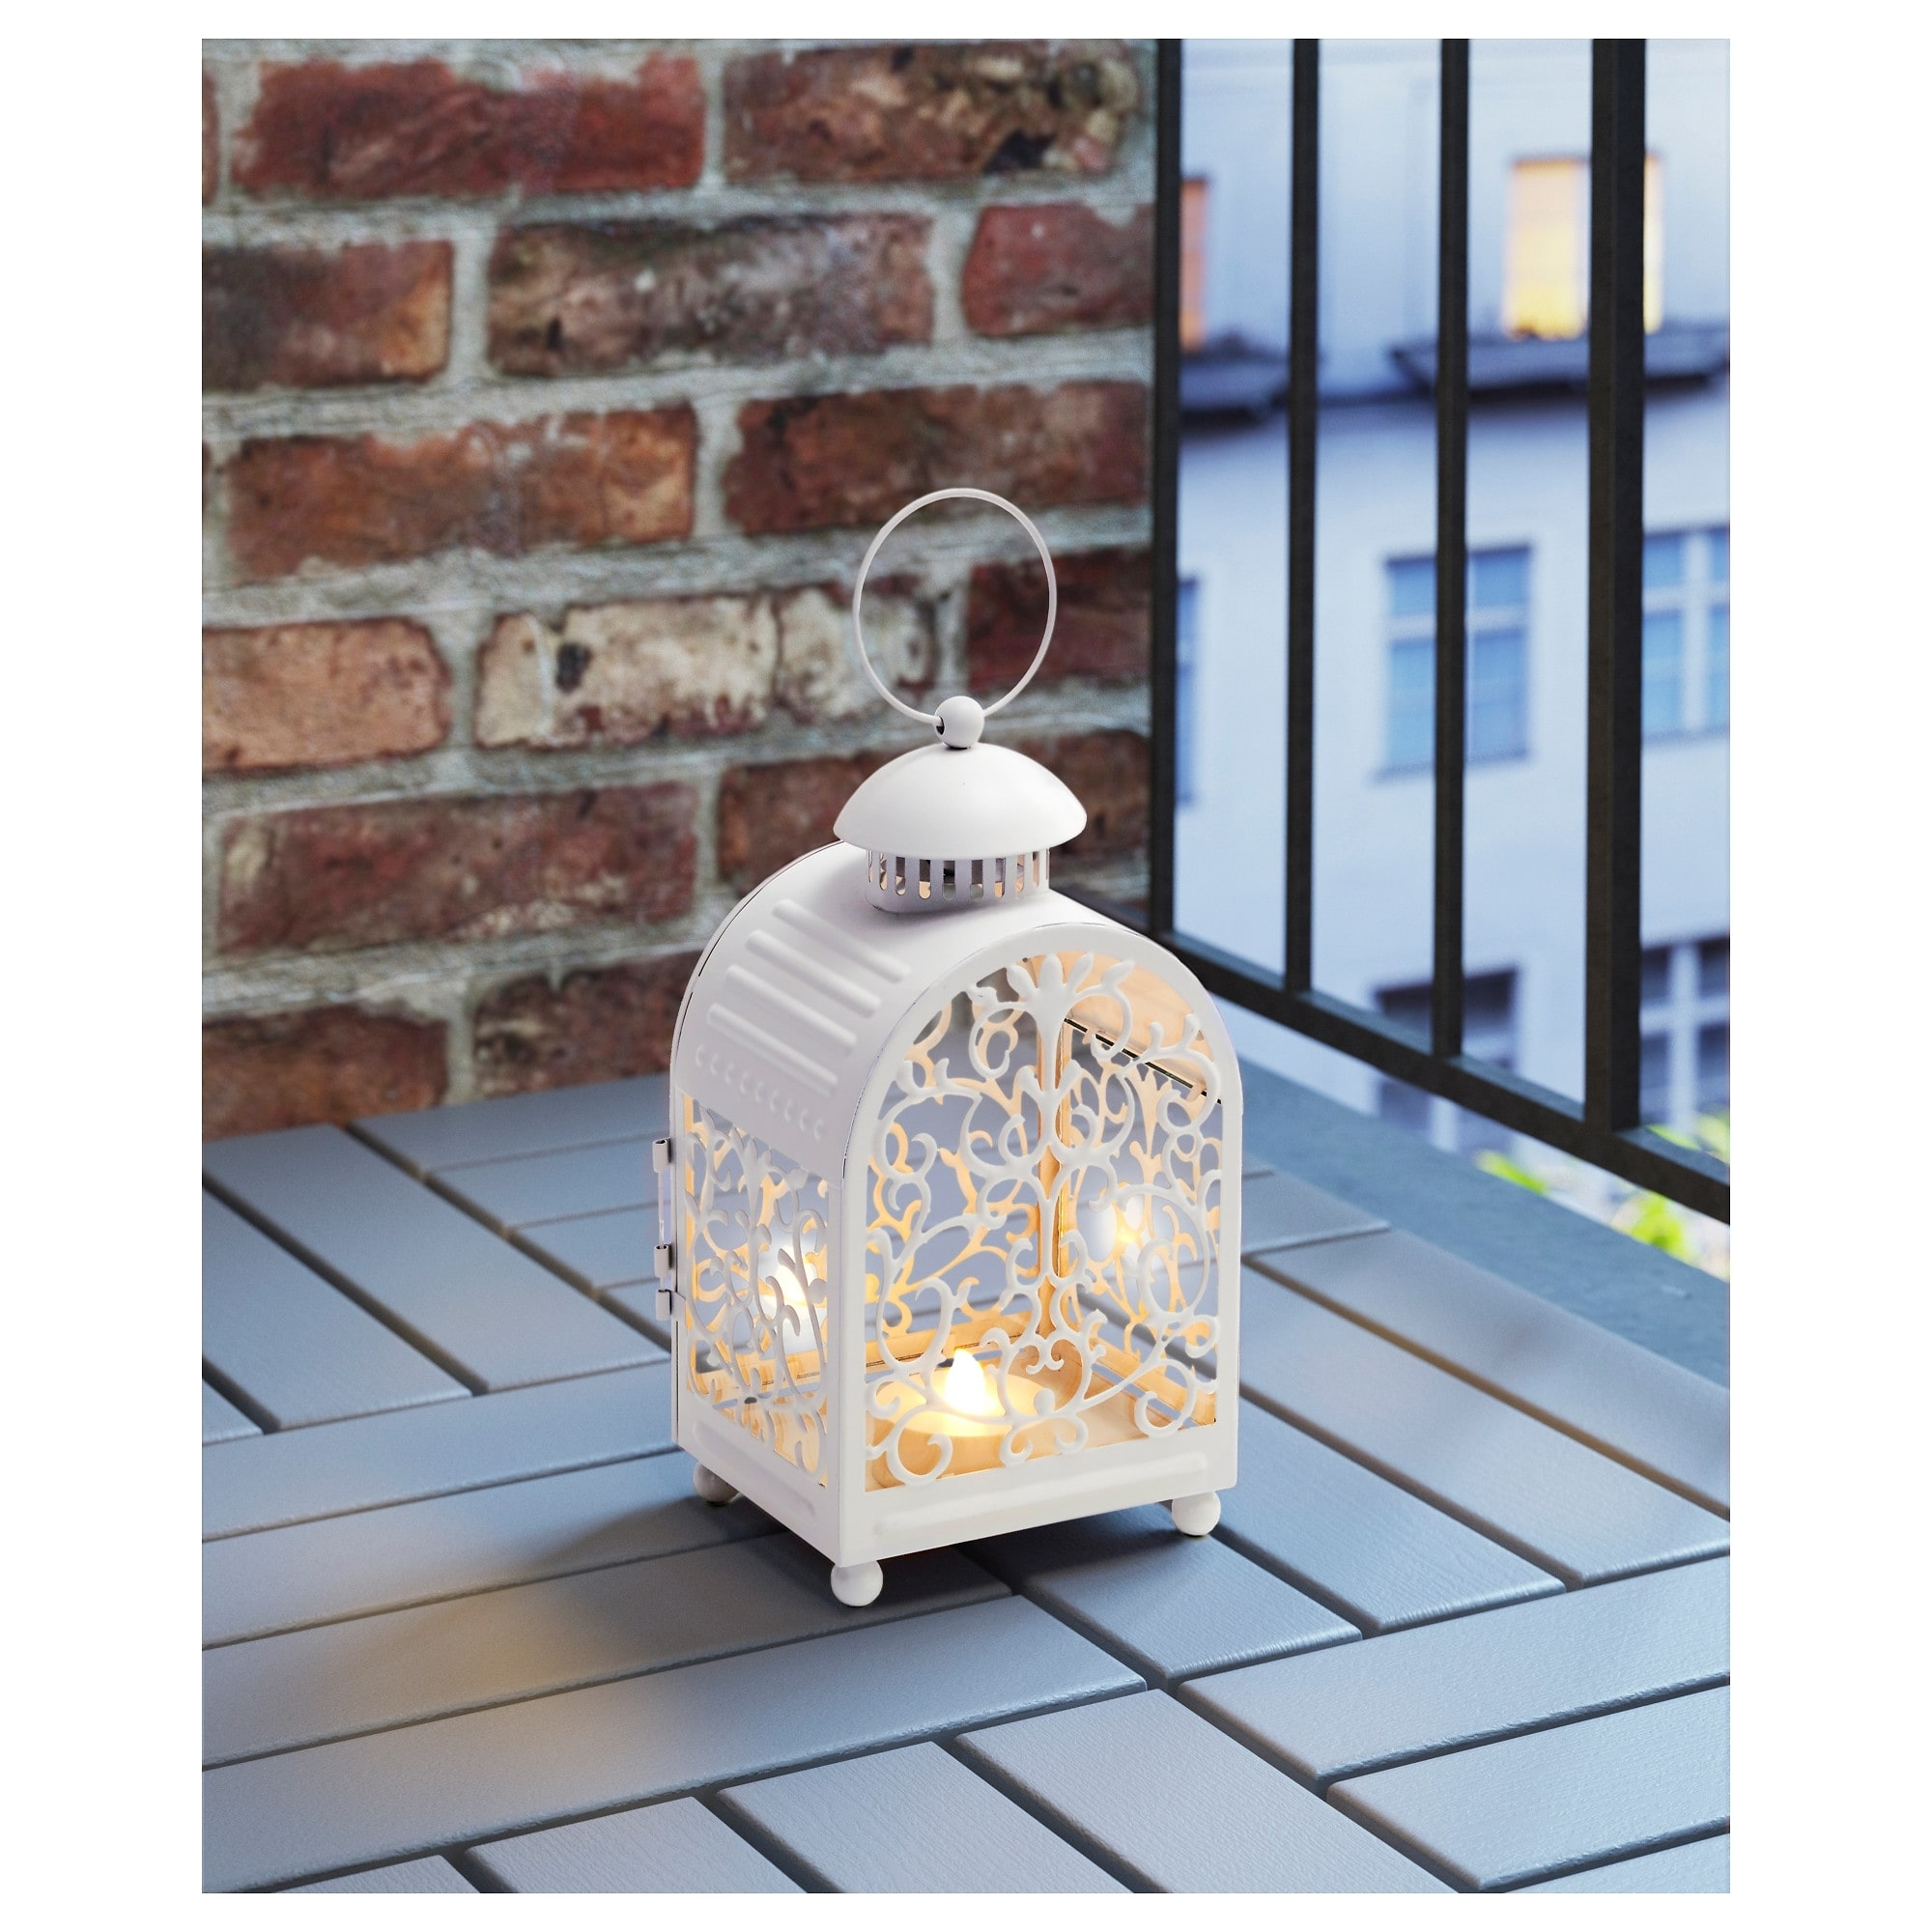 Outdoor Metal Lanterns For Candles Regarding 2018 Gottgöra Lantern For Candle In Metal Cup In/outdoor White 26 Cm – Ikea (Gallery 14 of 20)